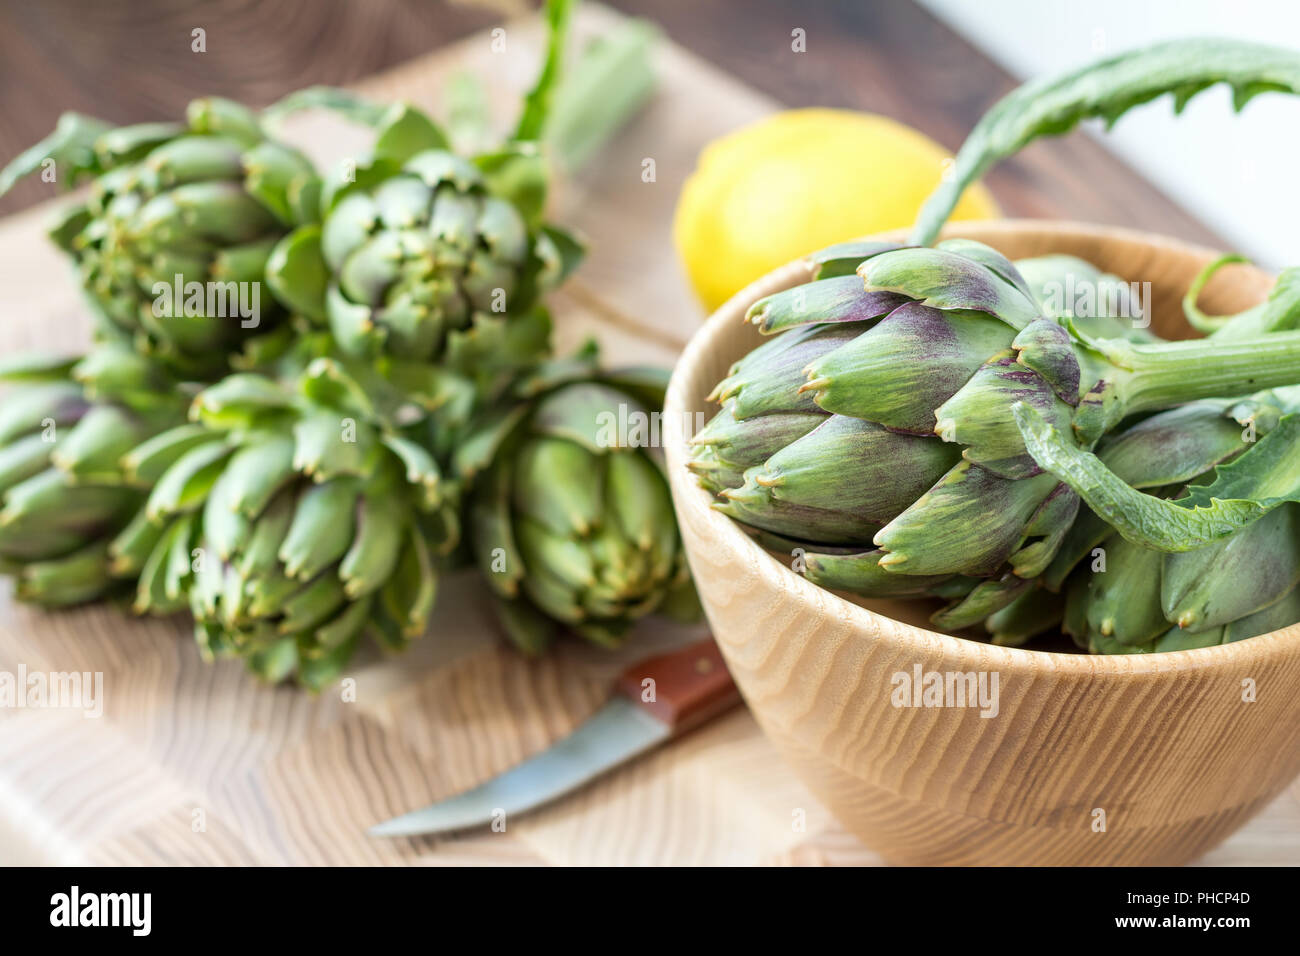 Two artichoke bouquets on kitchen table among some kitchen items - Stock Image